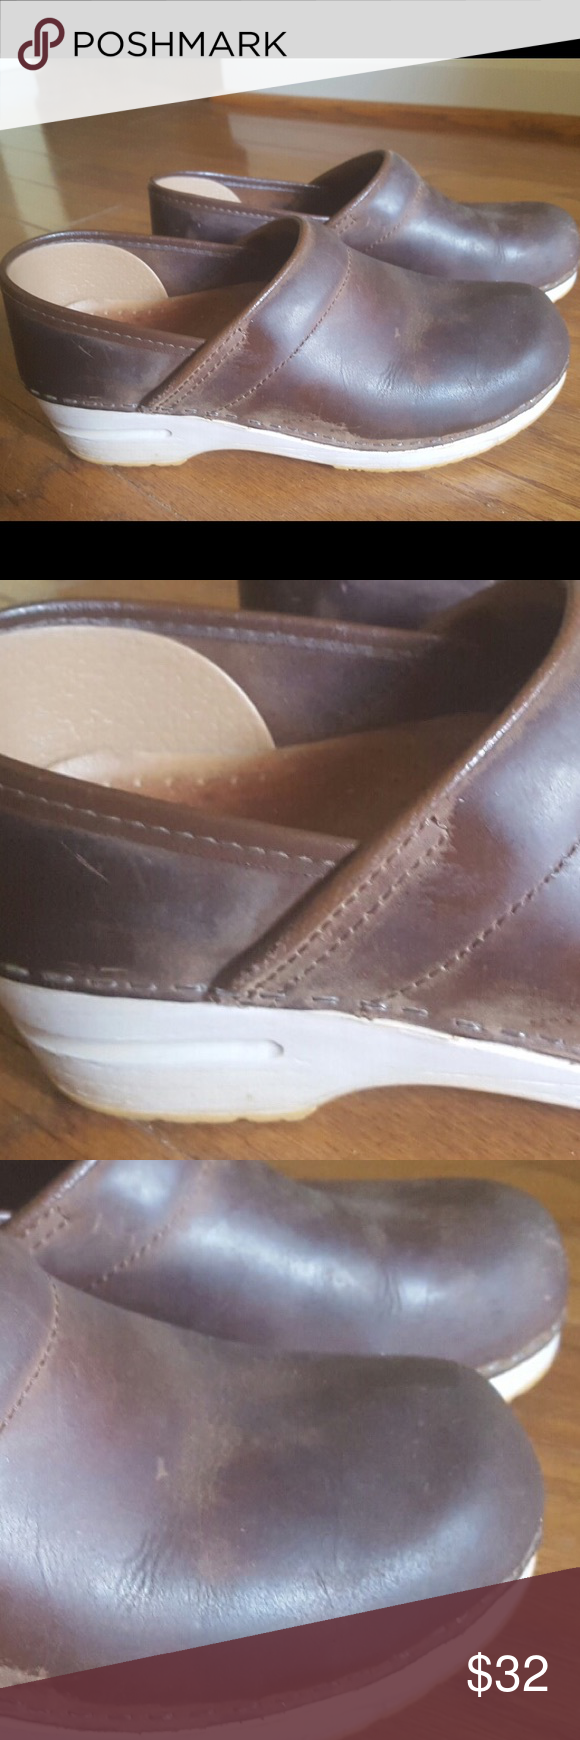 Dansko brown leather clogs 37 Very good condition. Leather. Dansko brand. 37 Dansko Shoes Mules & Clogs